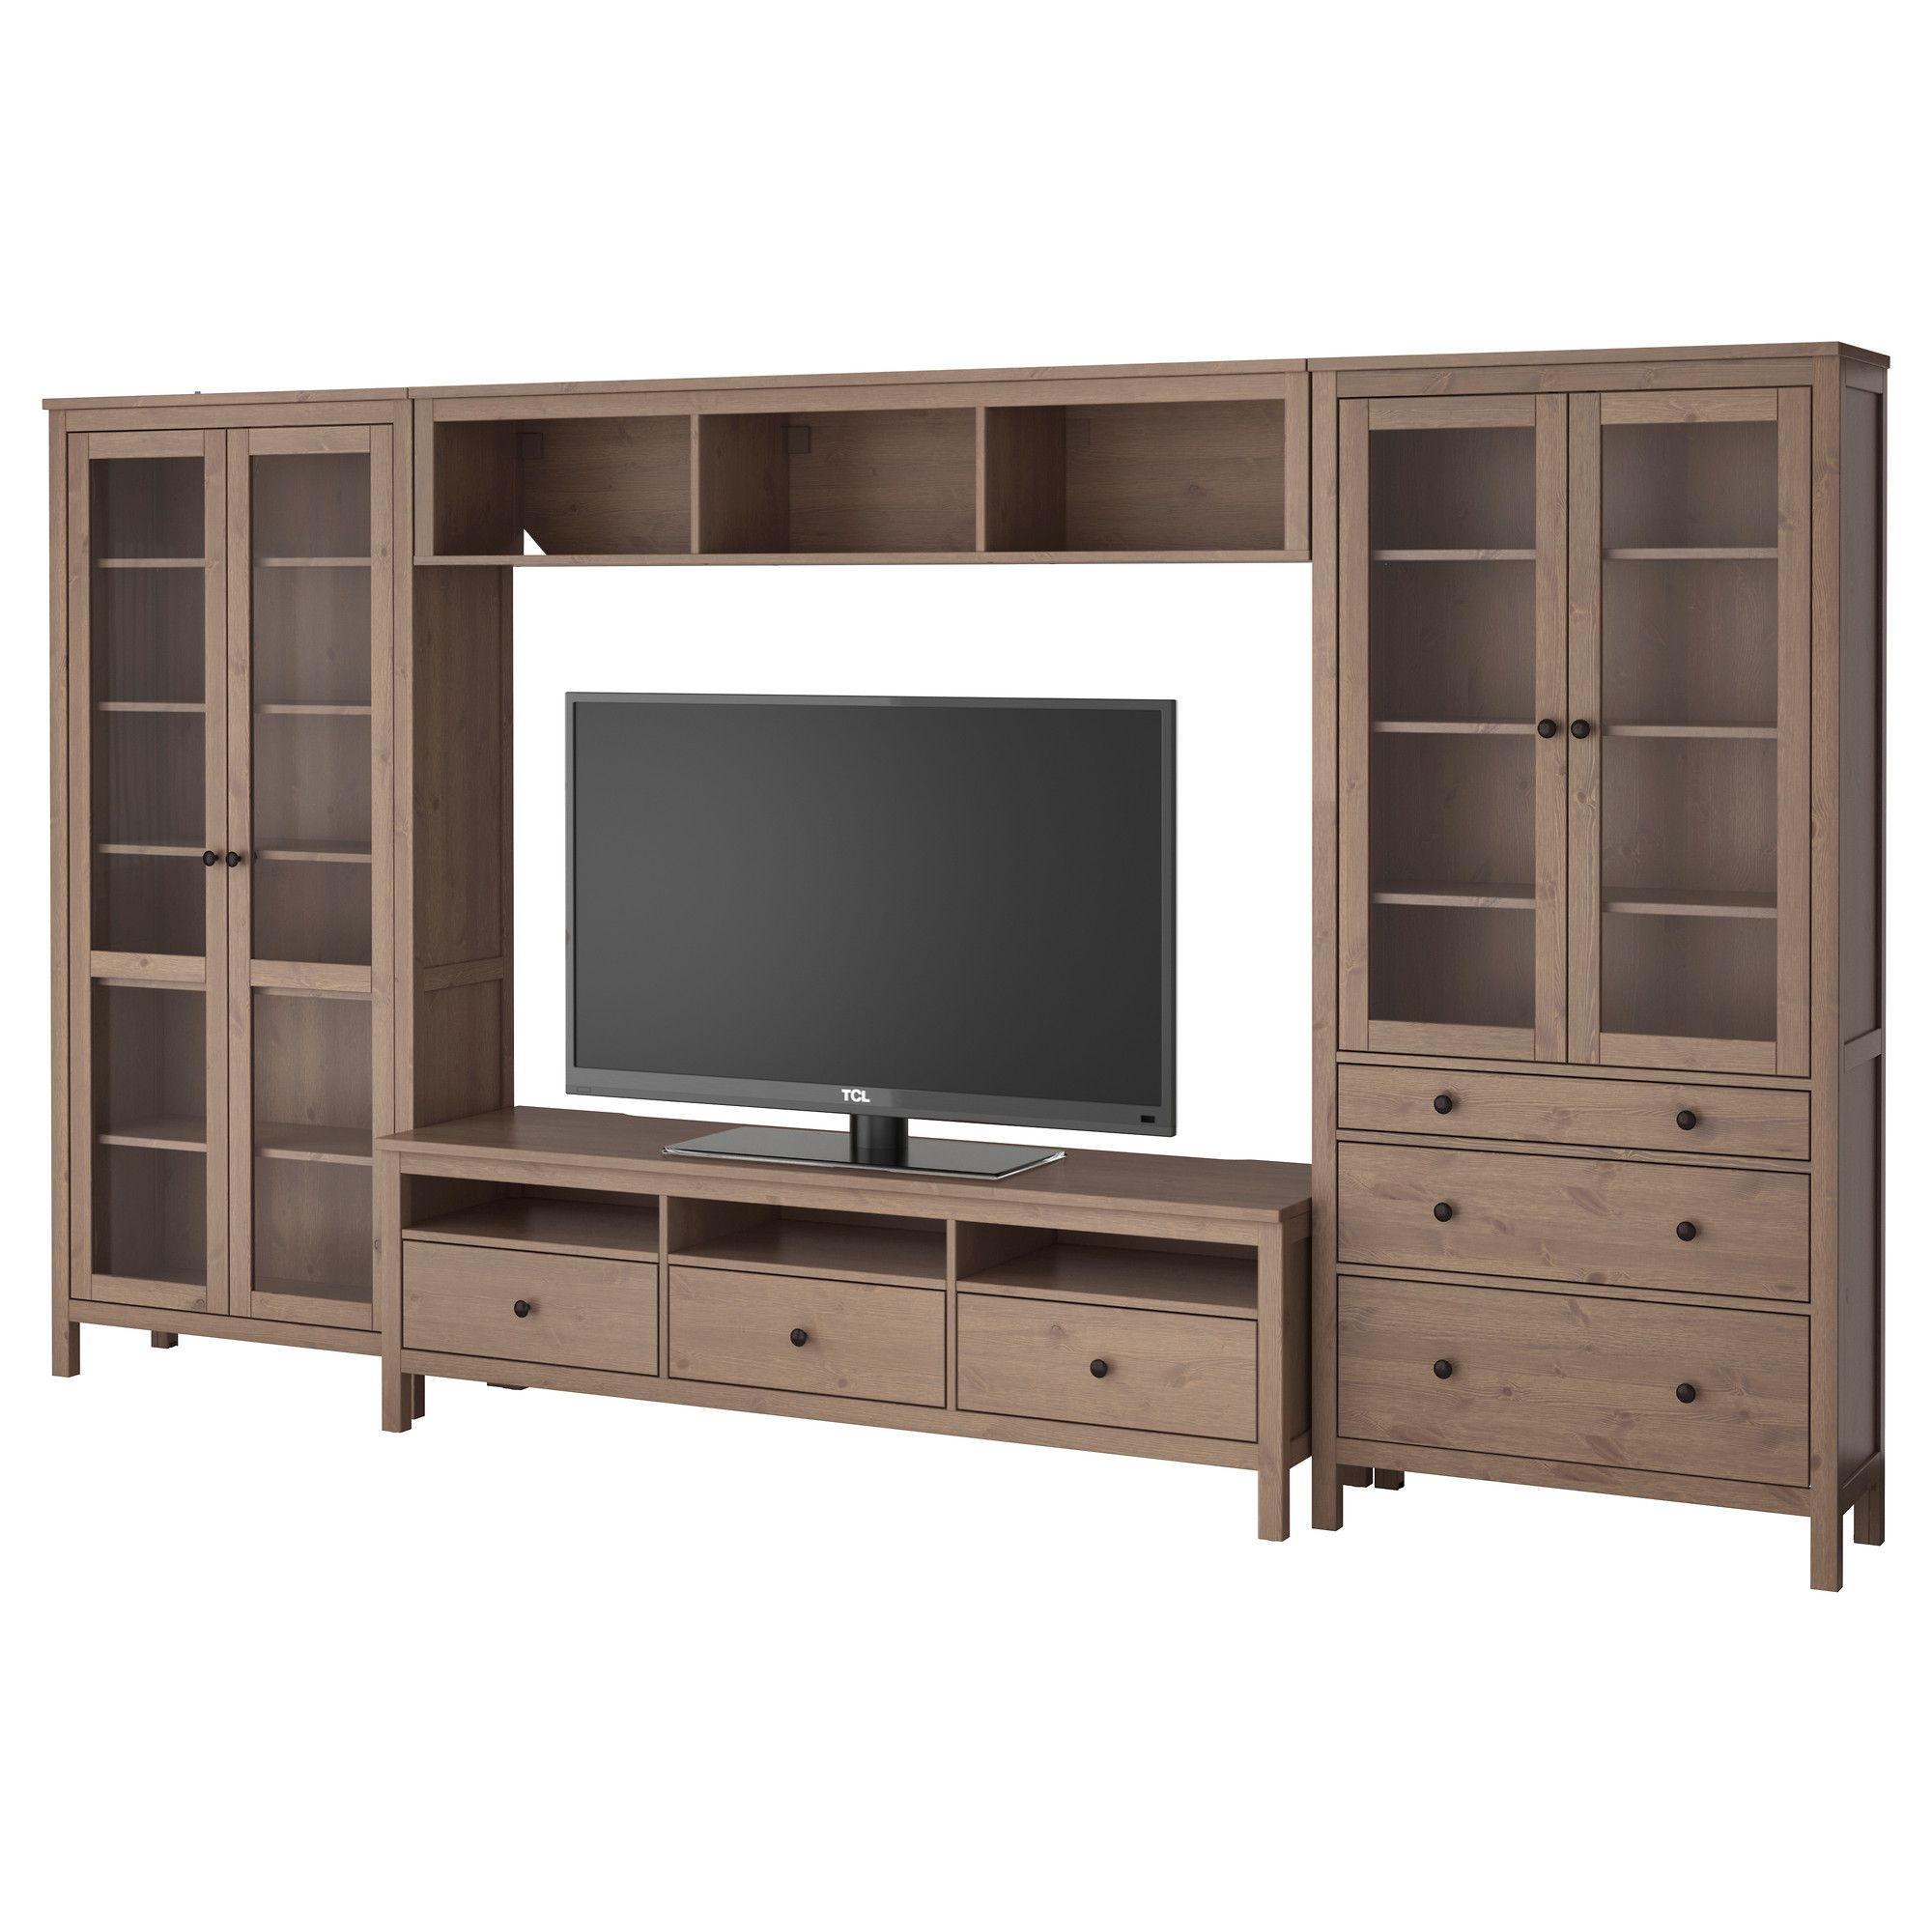 Us Furniture And Home Furnishings Ikea Hemnes Tv Stand